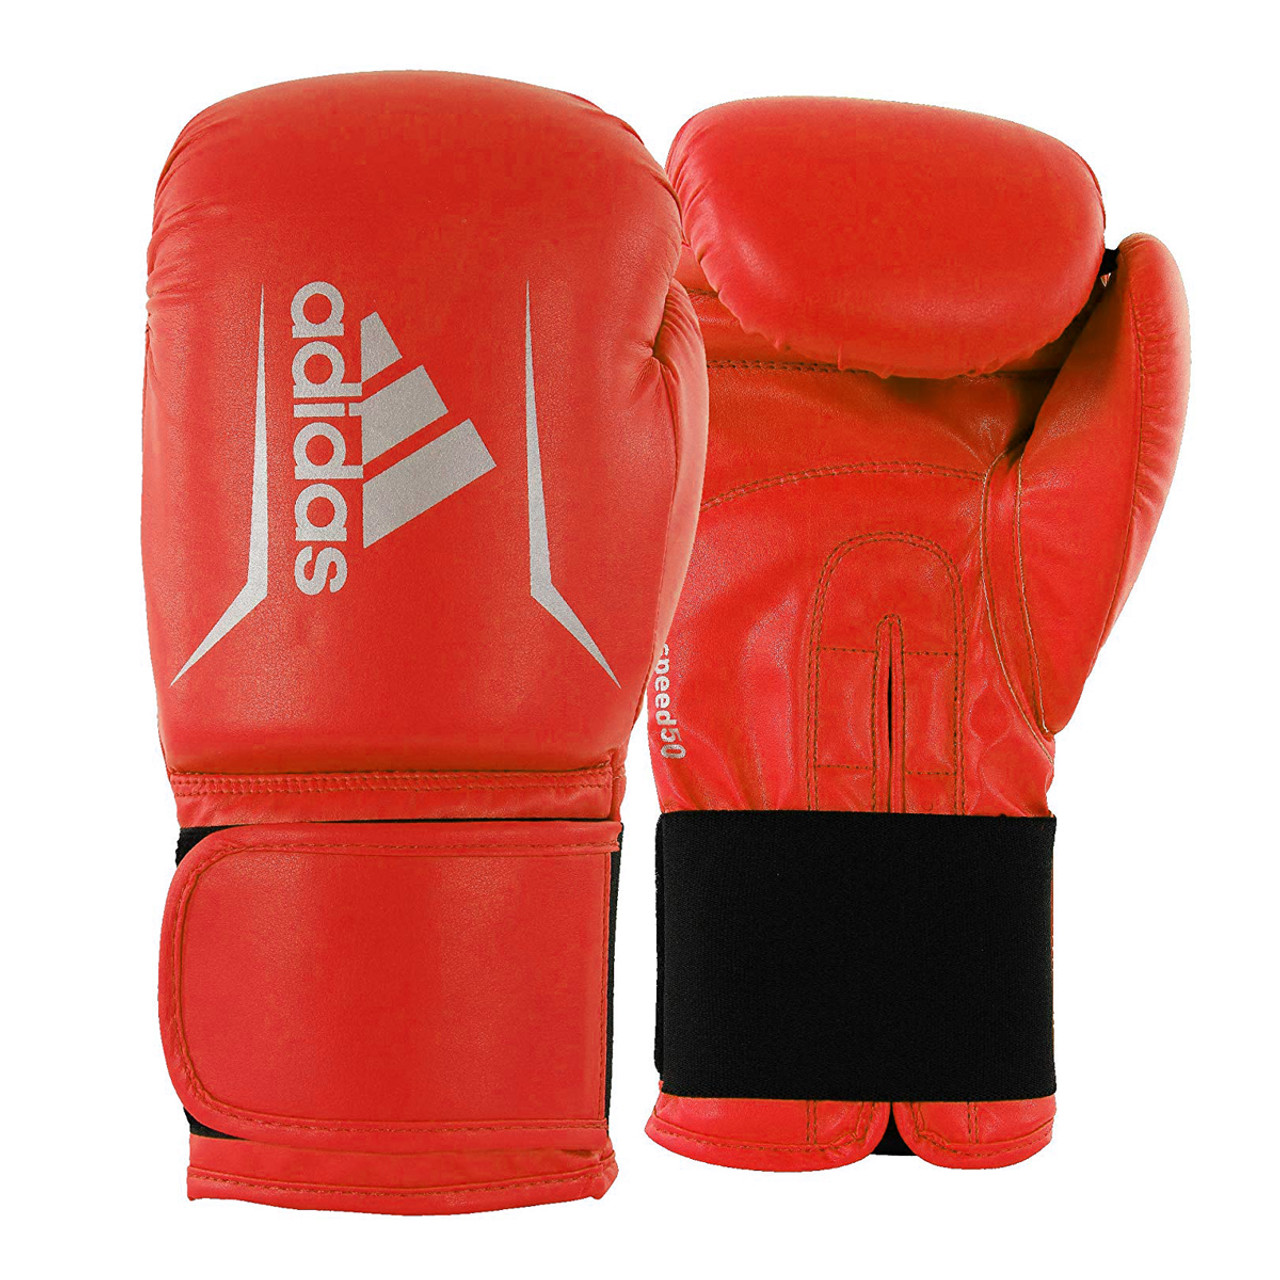 OFFER **** ADIDAS SPEED 50 BOXING GLOVES BLACK//GOLD with FREE MOUTHGUARD